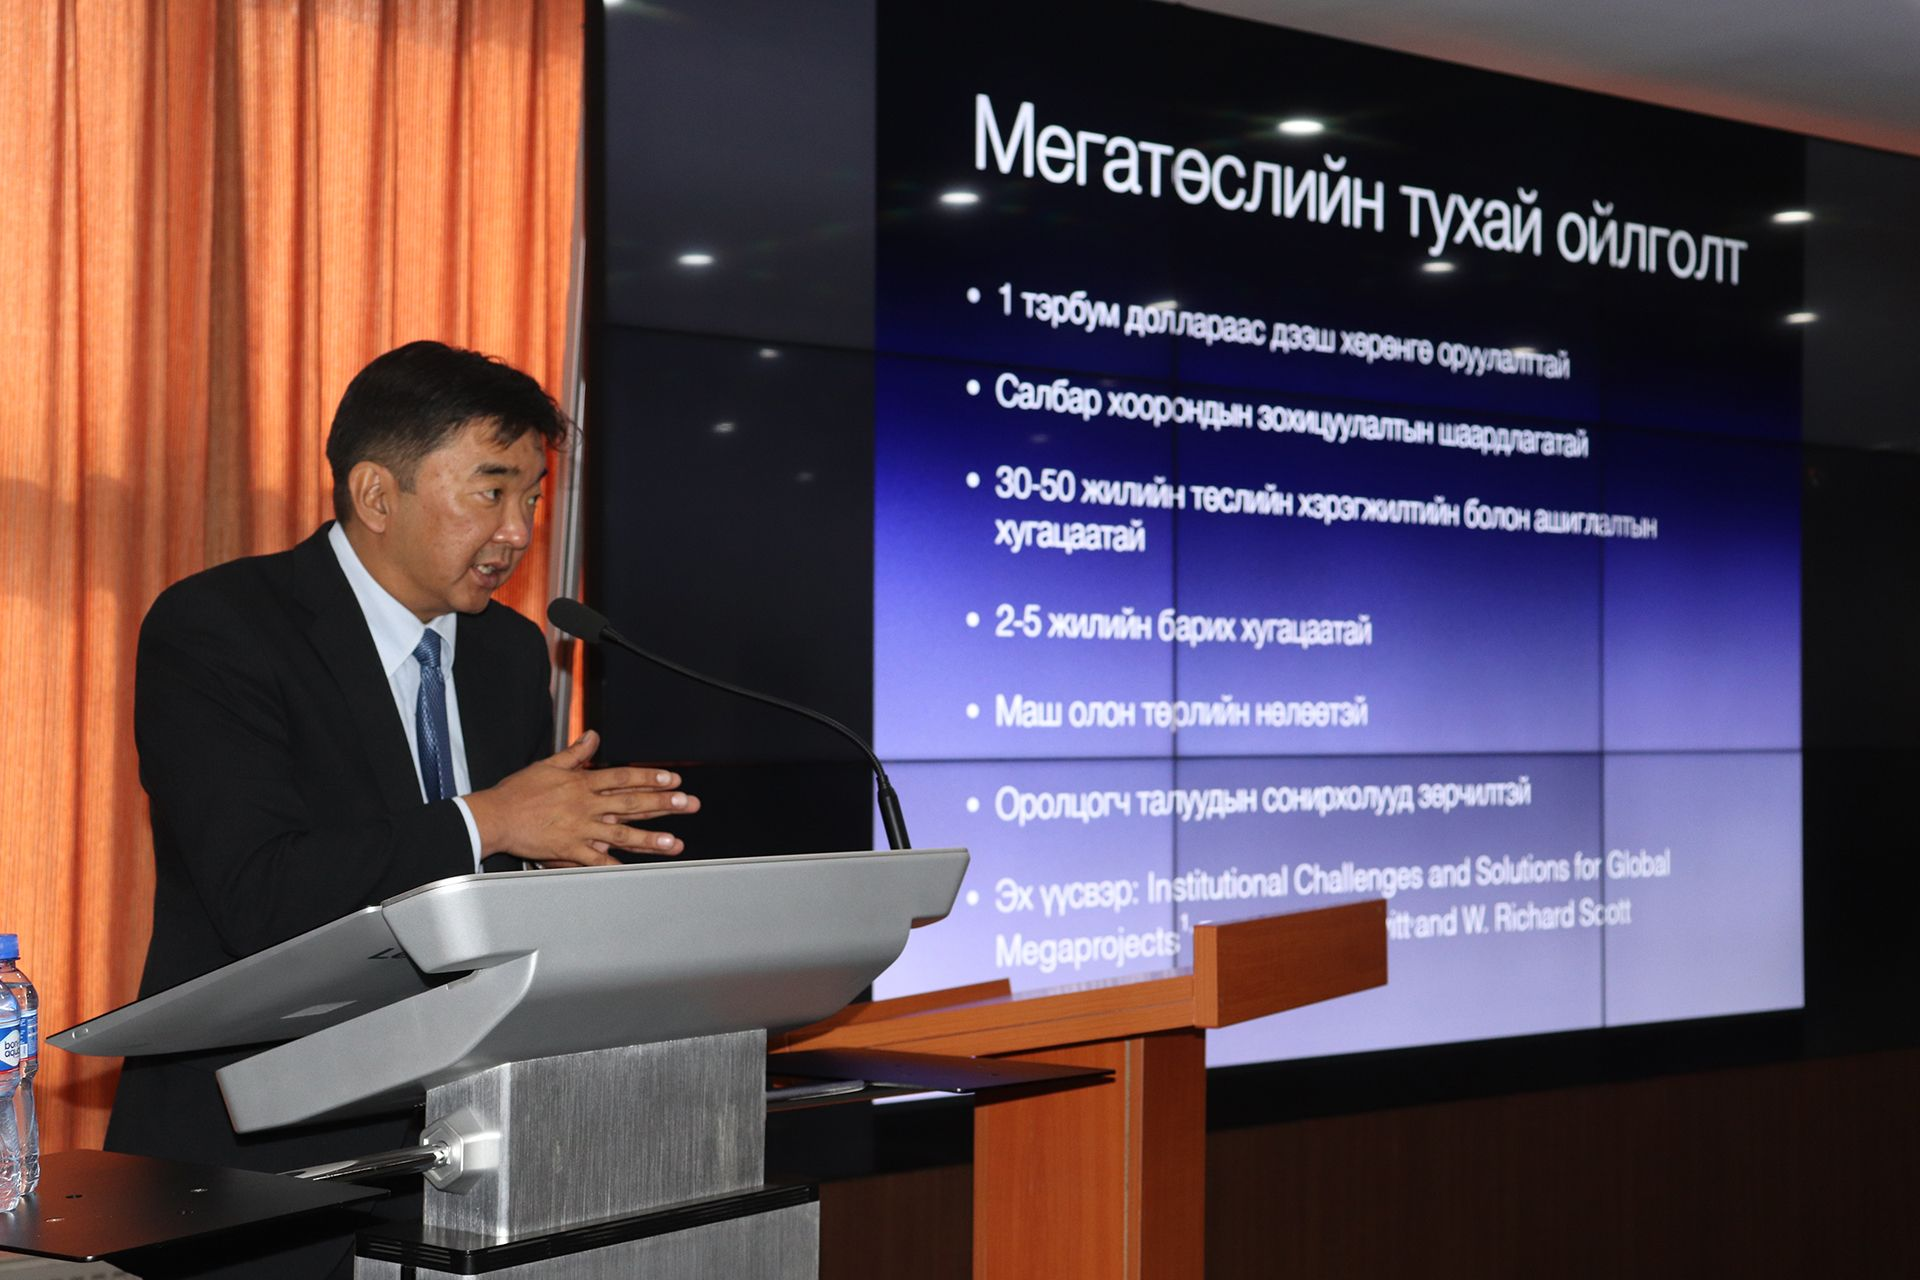 Ph.D, Khashchuluun Chuluundorj, Department of Economics, National University of Mongolia